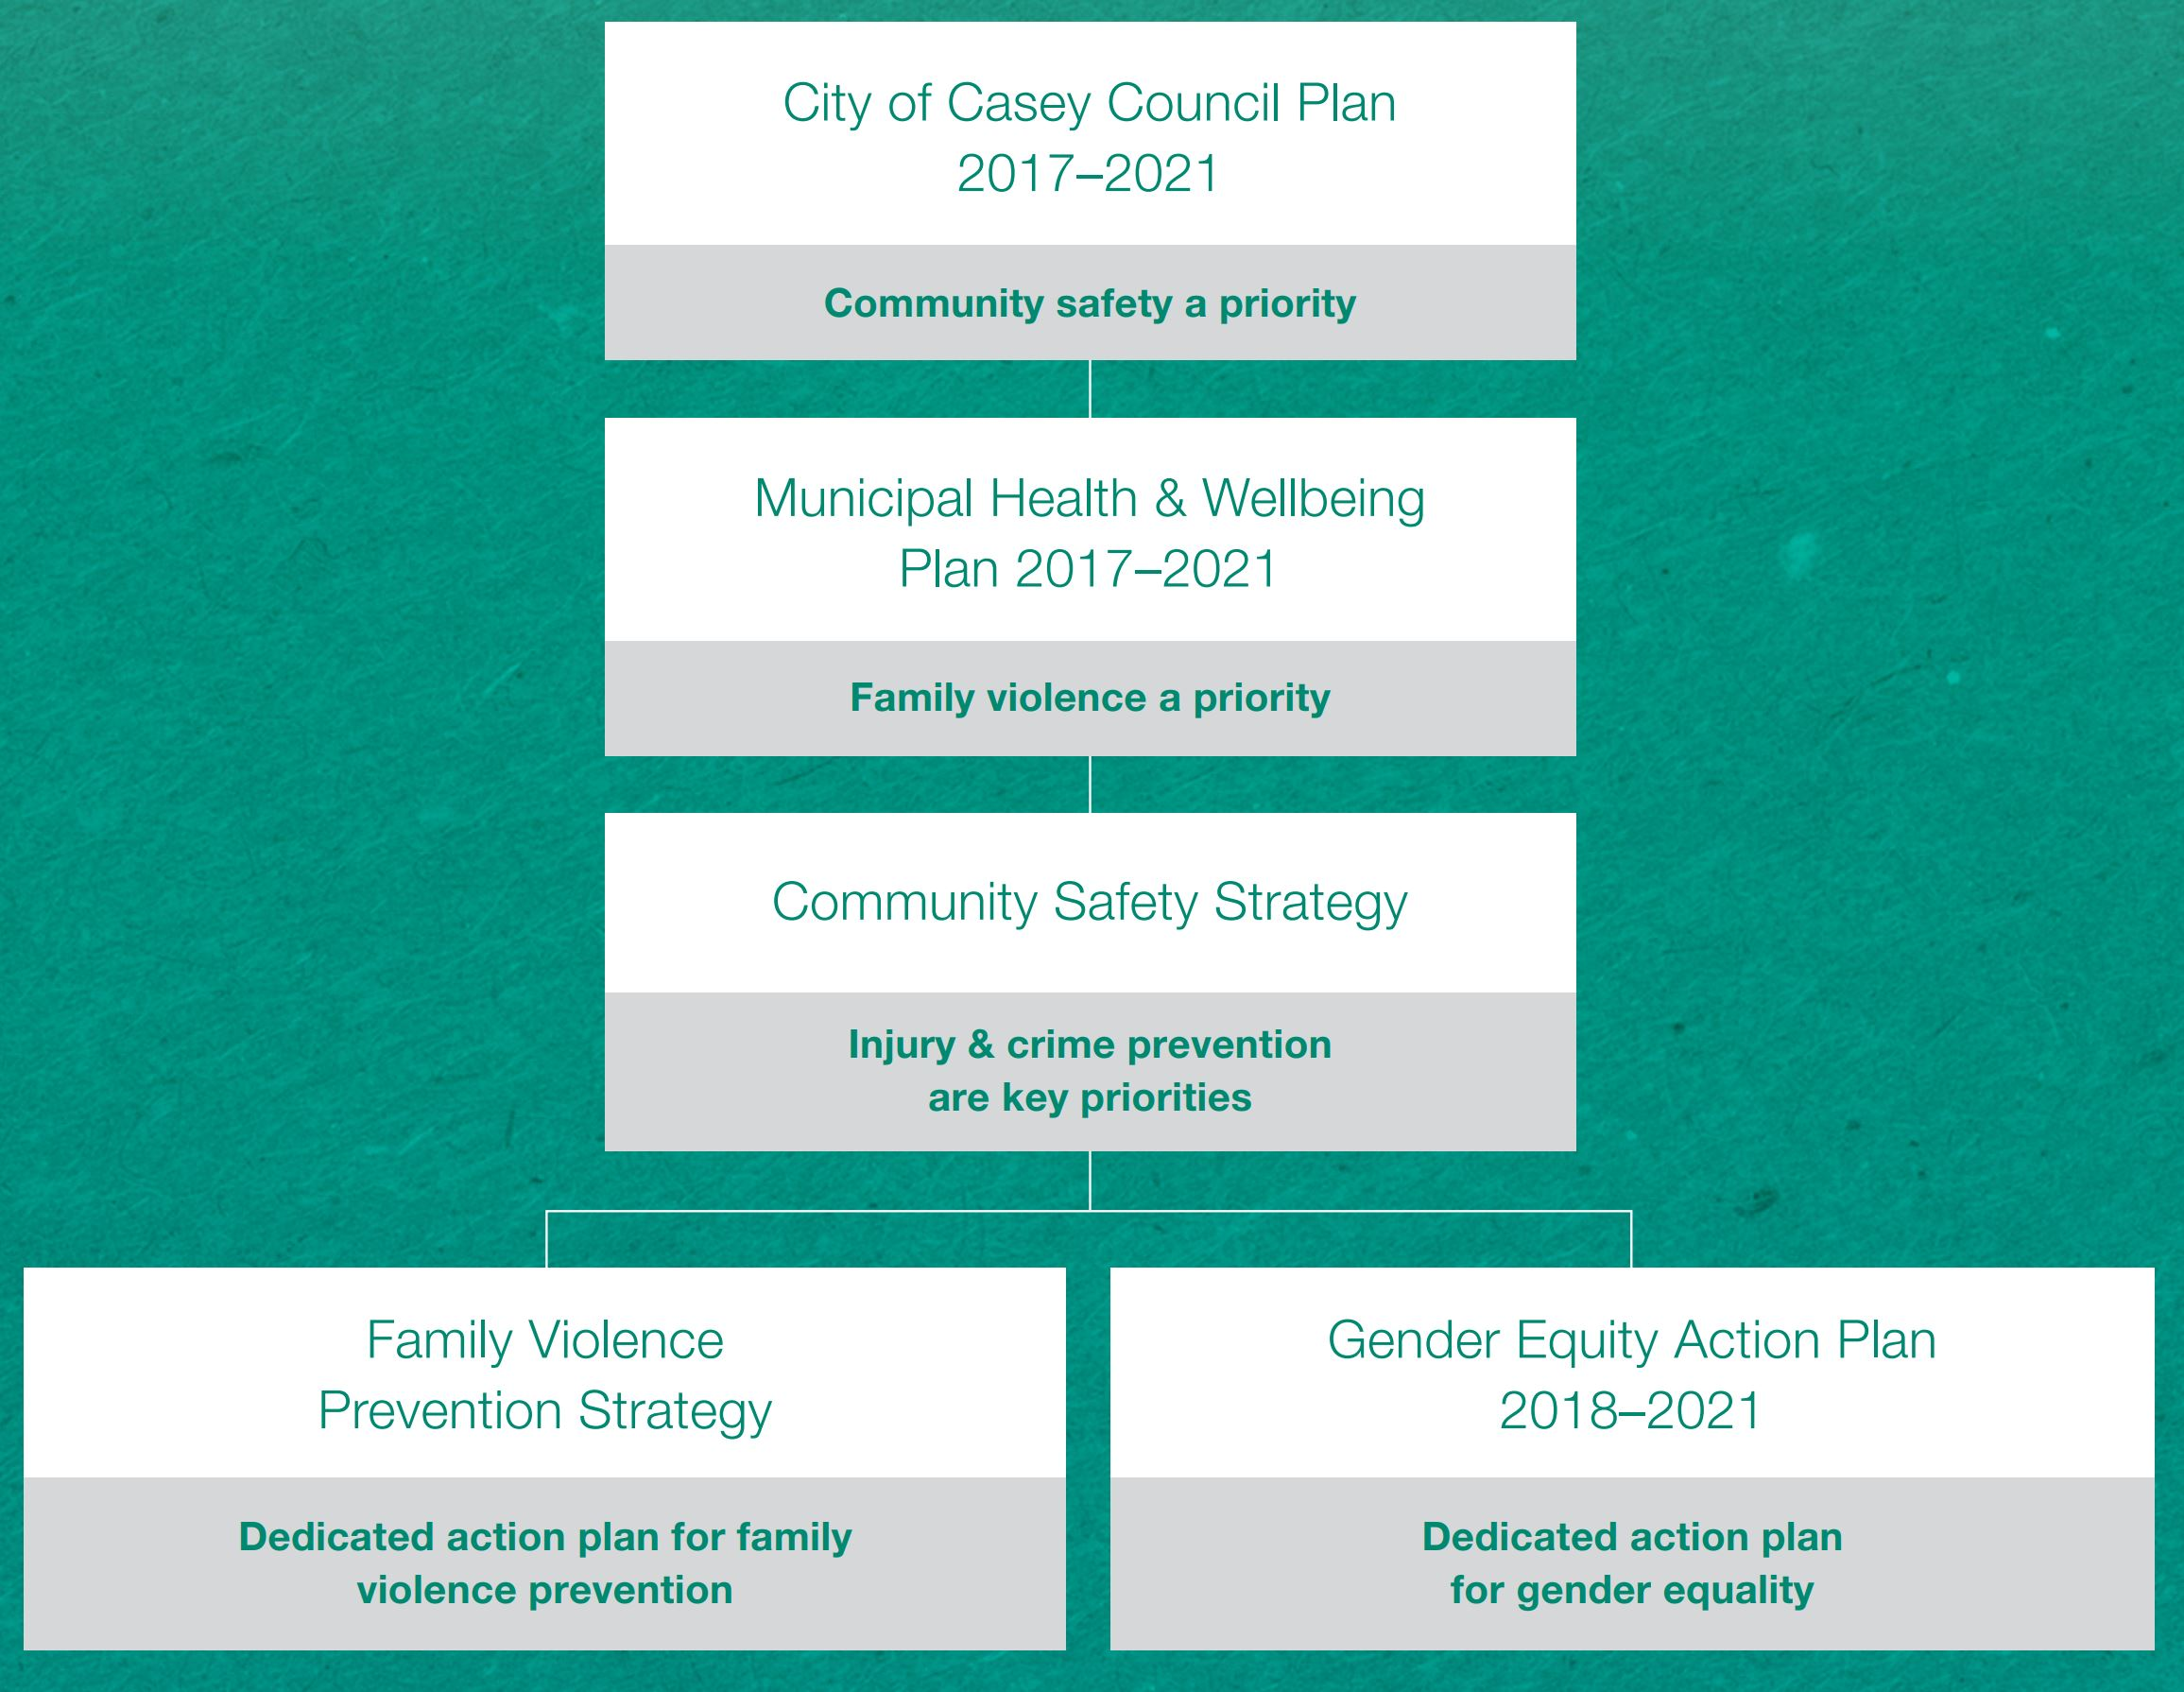 Alignment of Council plans